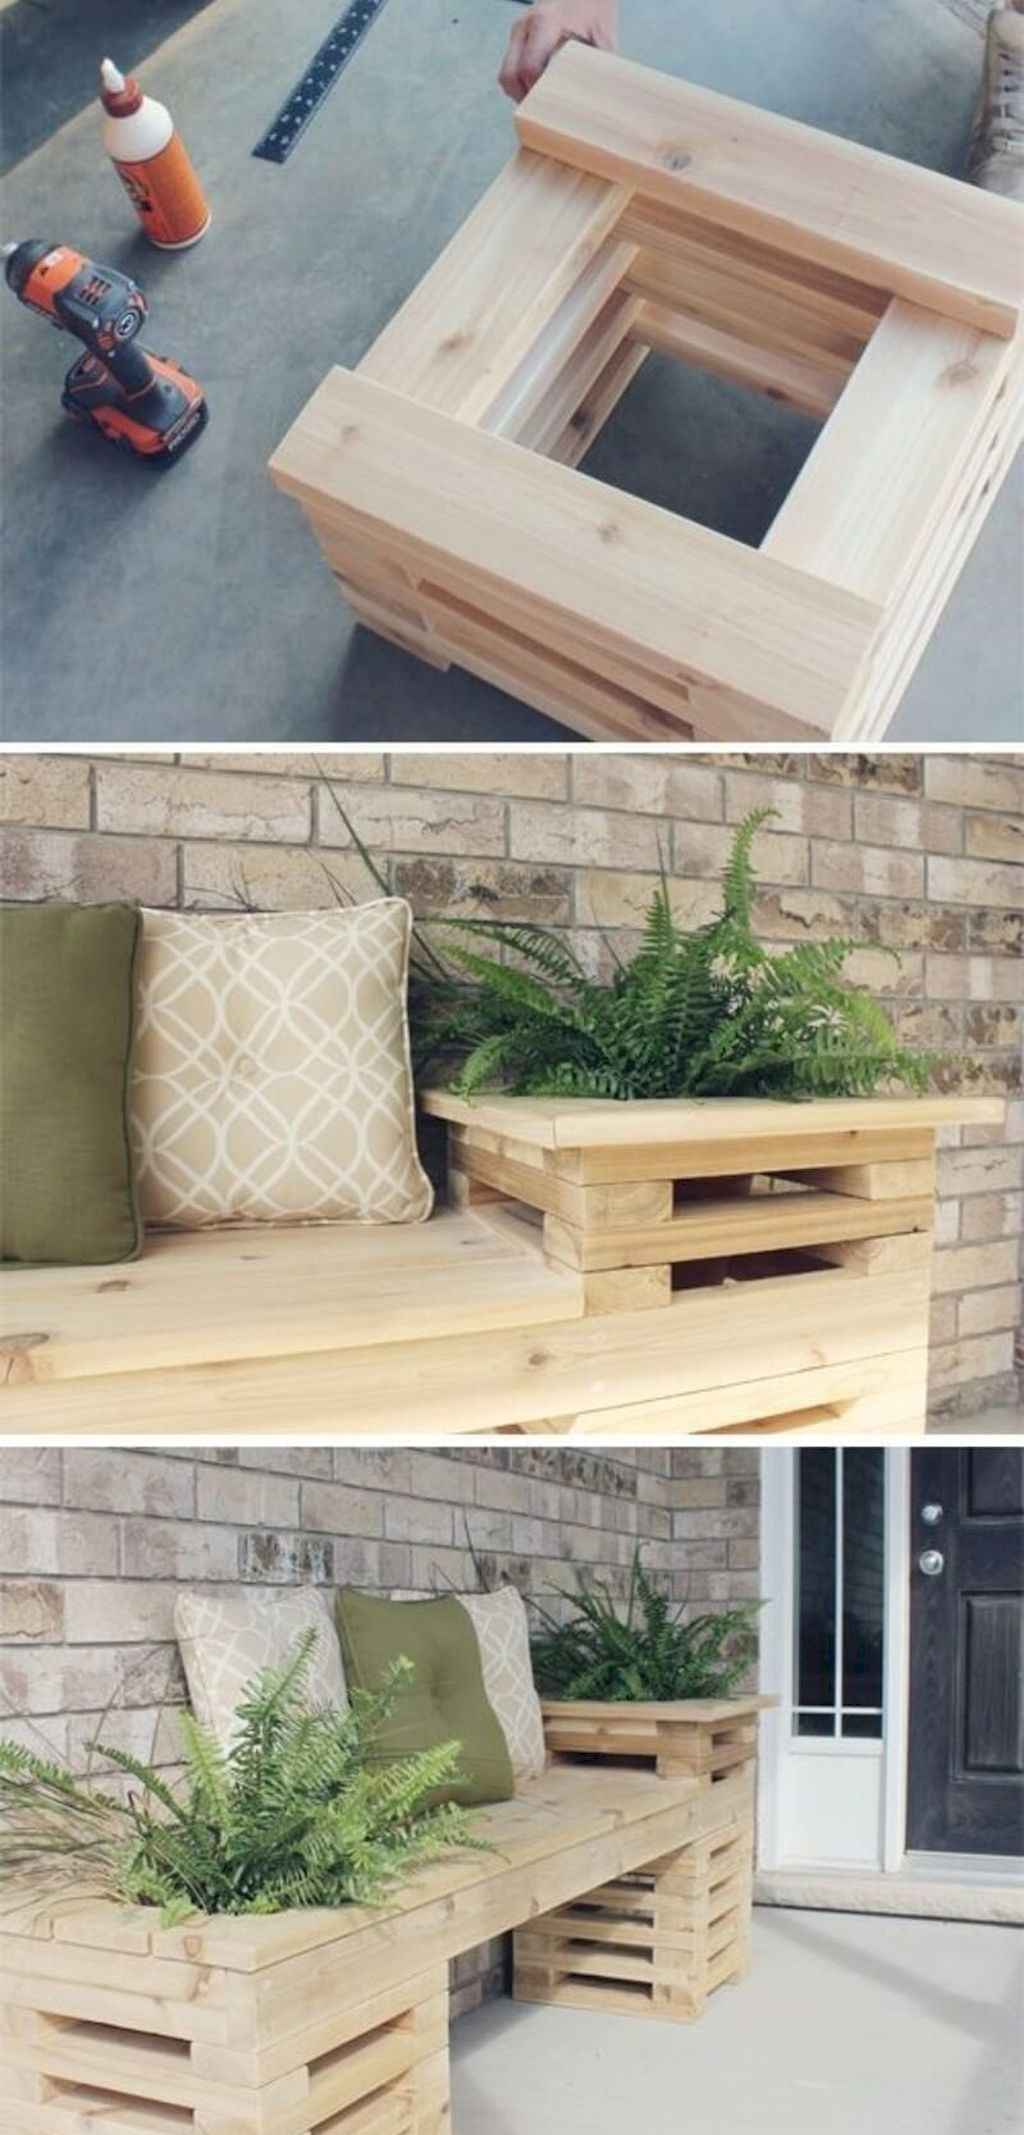 Cleverly diy porch patio decorating ideas (29)